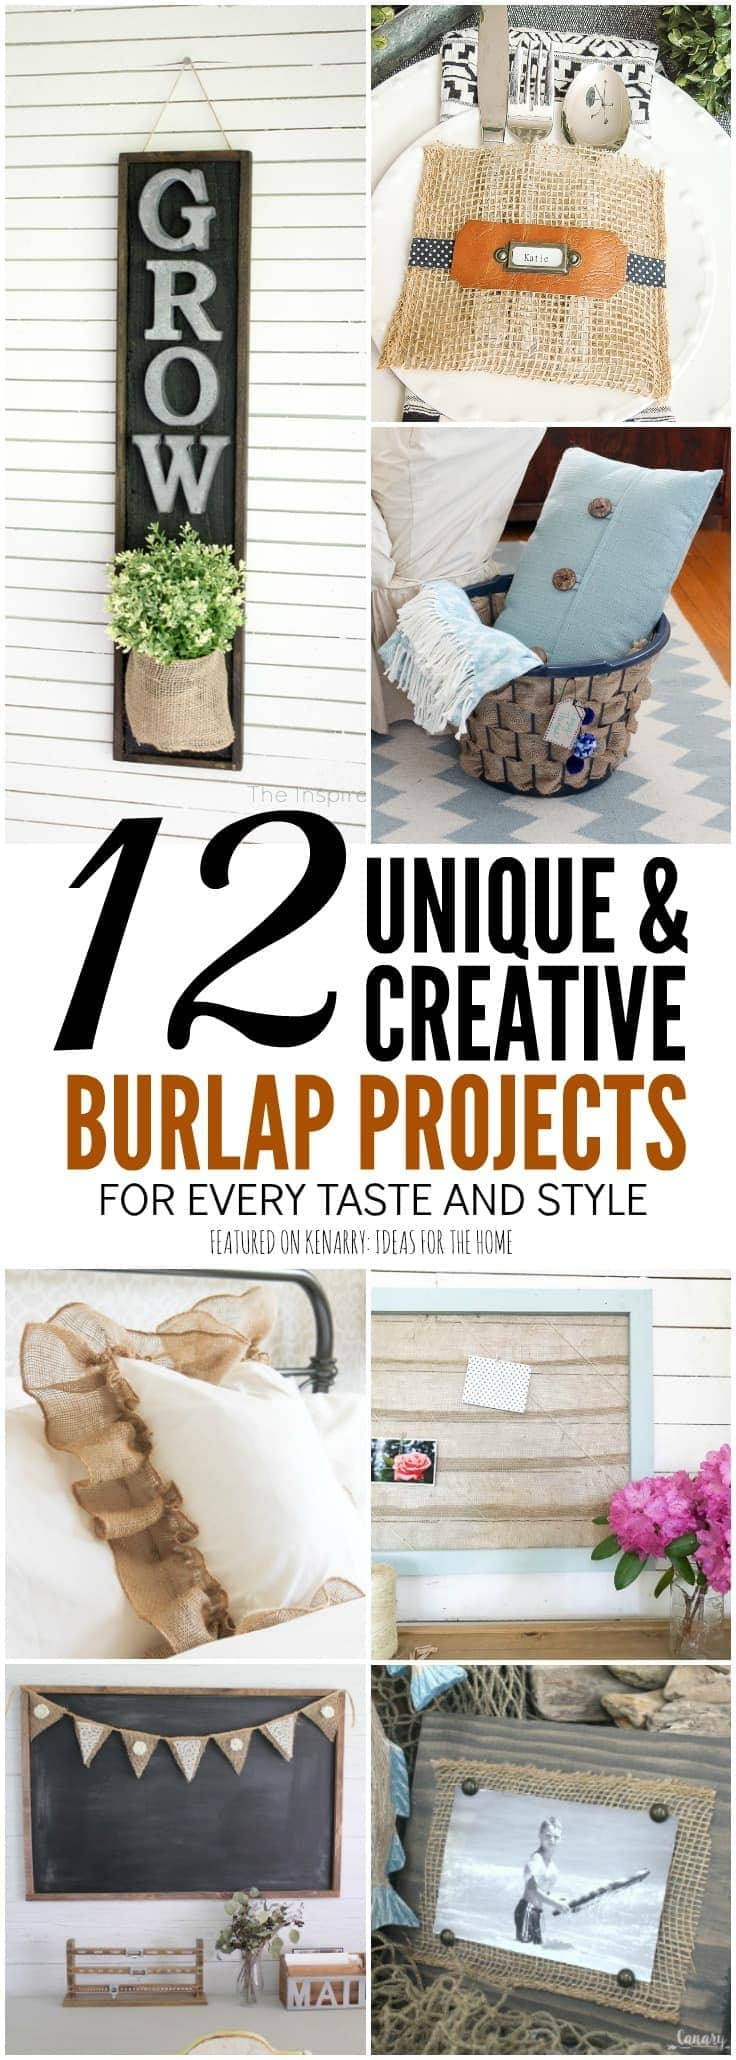 Burlap craft projects are easy to make and can be customized to fit any style or home decor. Rustic farmhouse style | Modern boho style | Classic country style | Burlap ribbon | Burlap ideas | Burlap crafts | Burlap decor